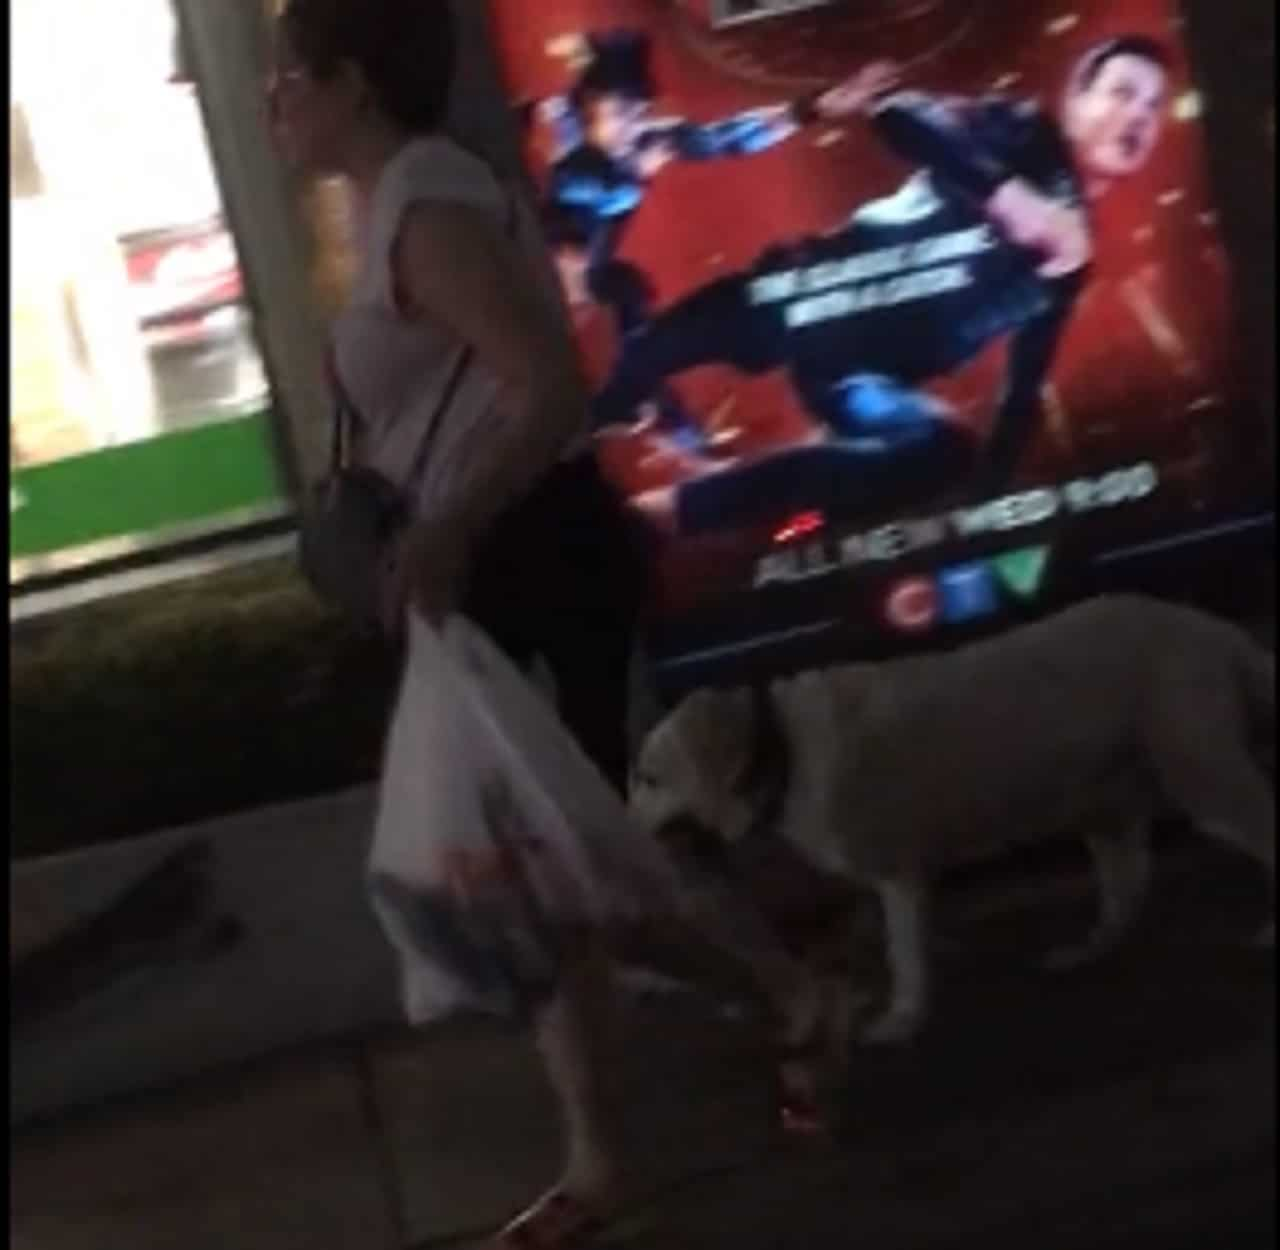 Dog helps owner with groceries